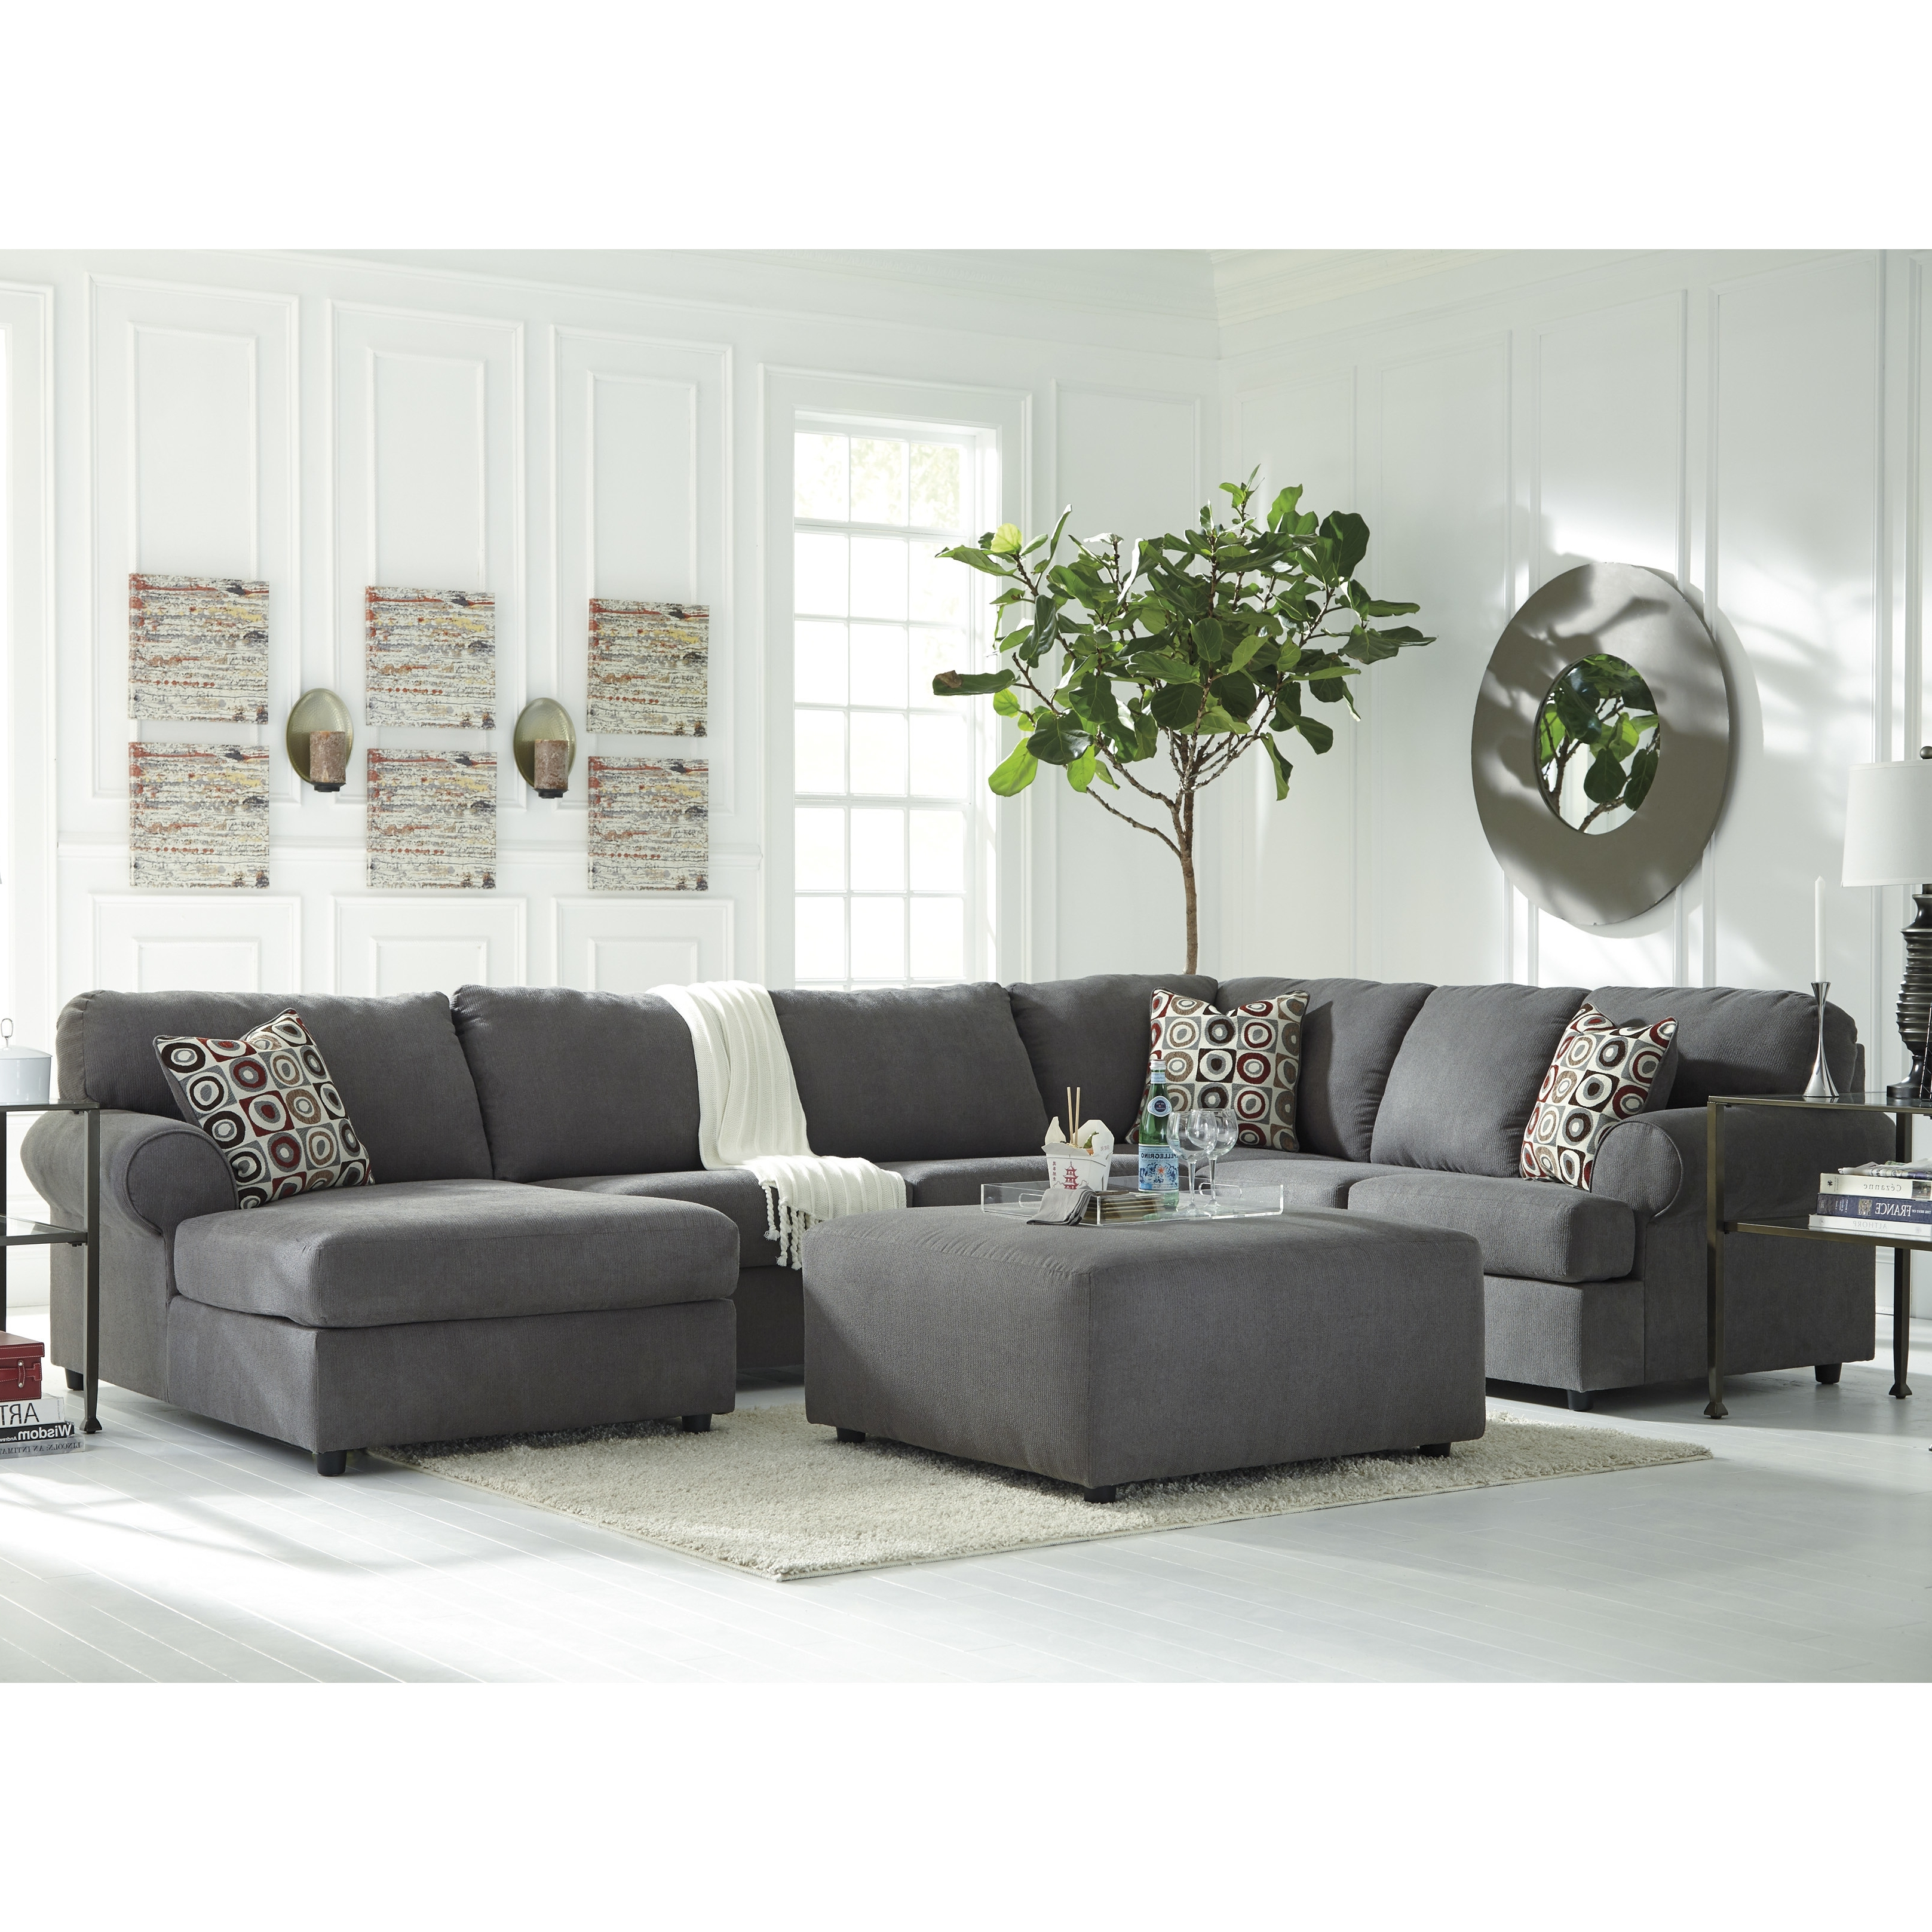 Most Recently Released Eau Claire Wi Sectional Sofas With Sellersville Reversible Sectional (View 4 of 20)